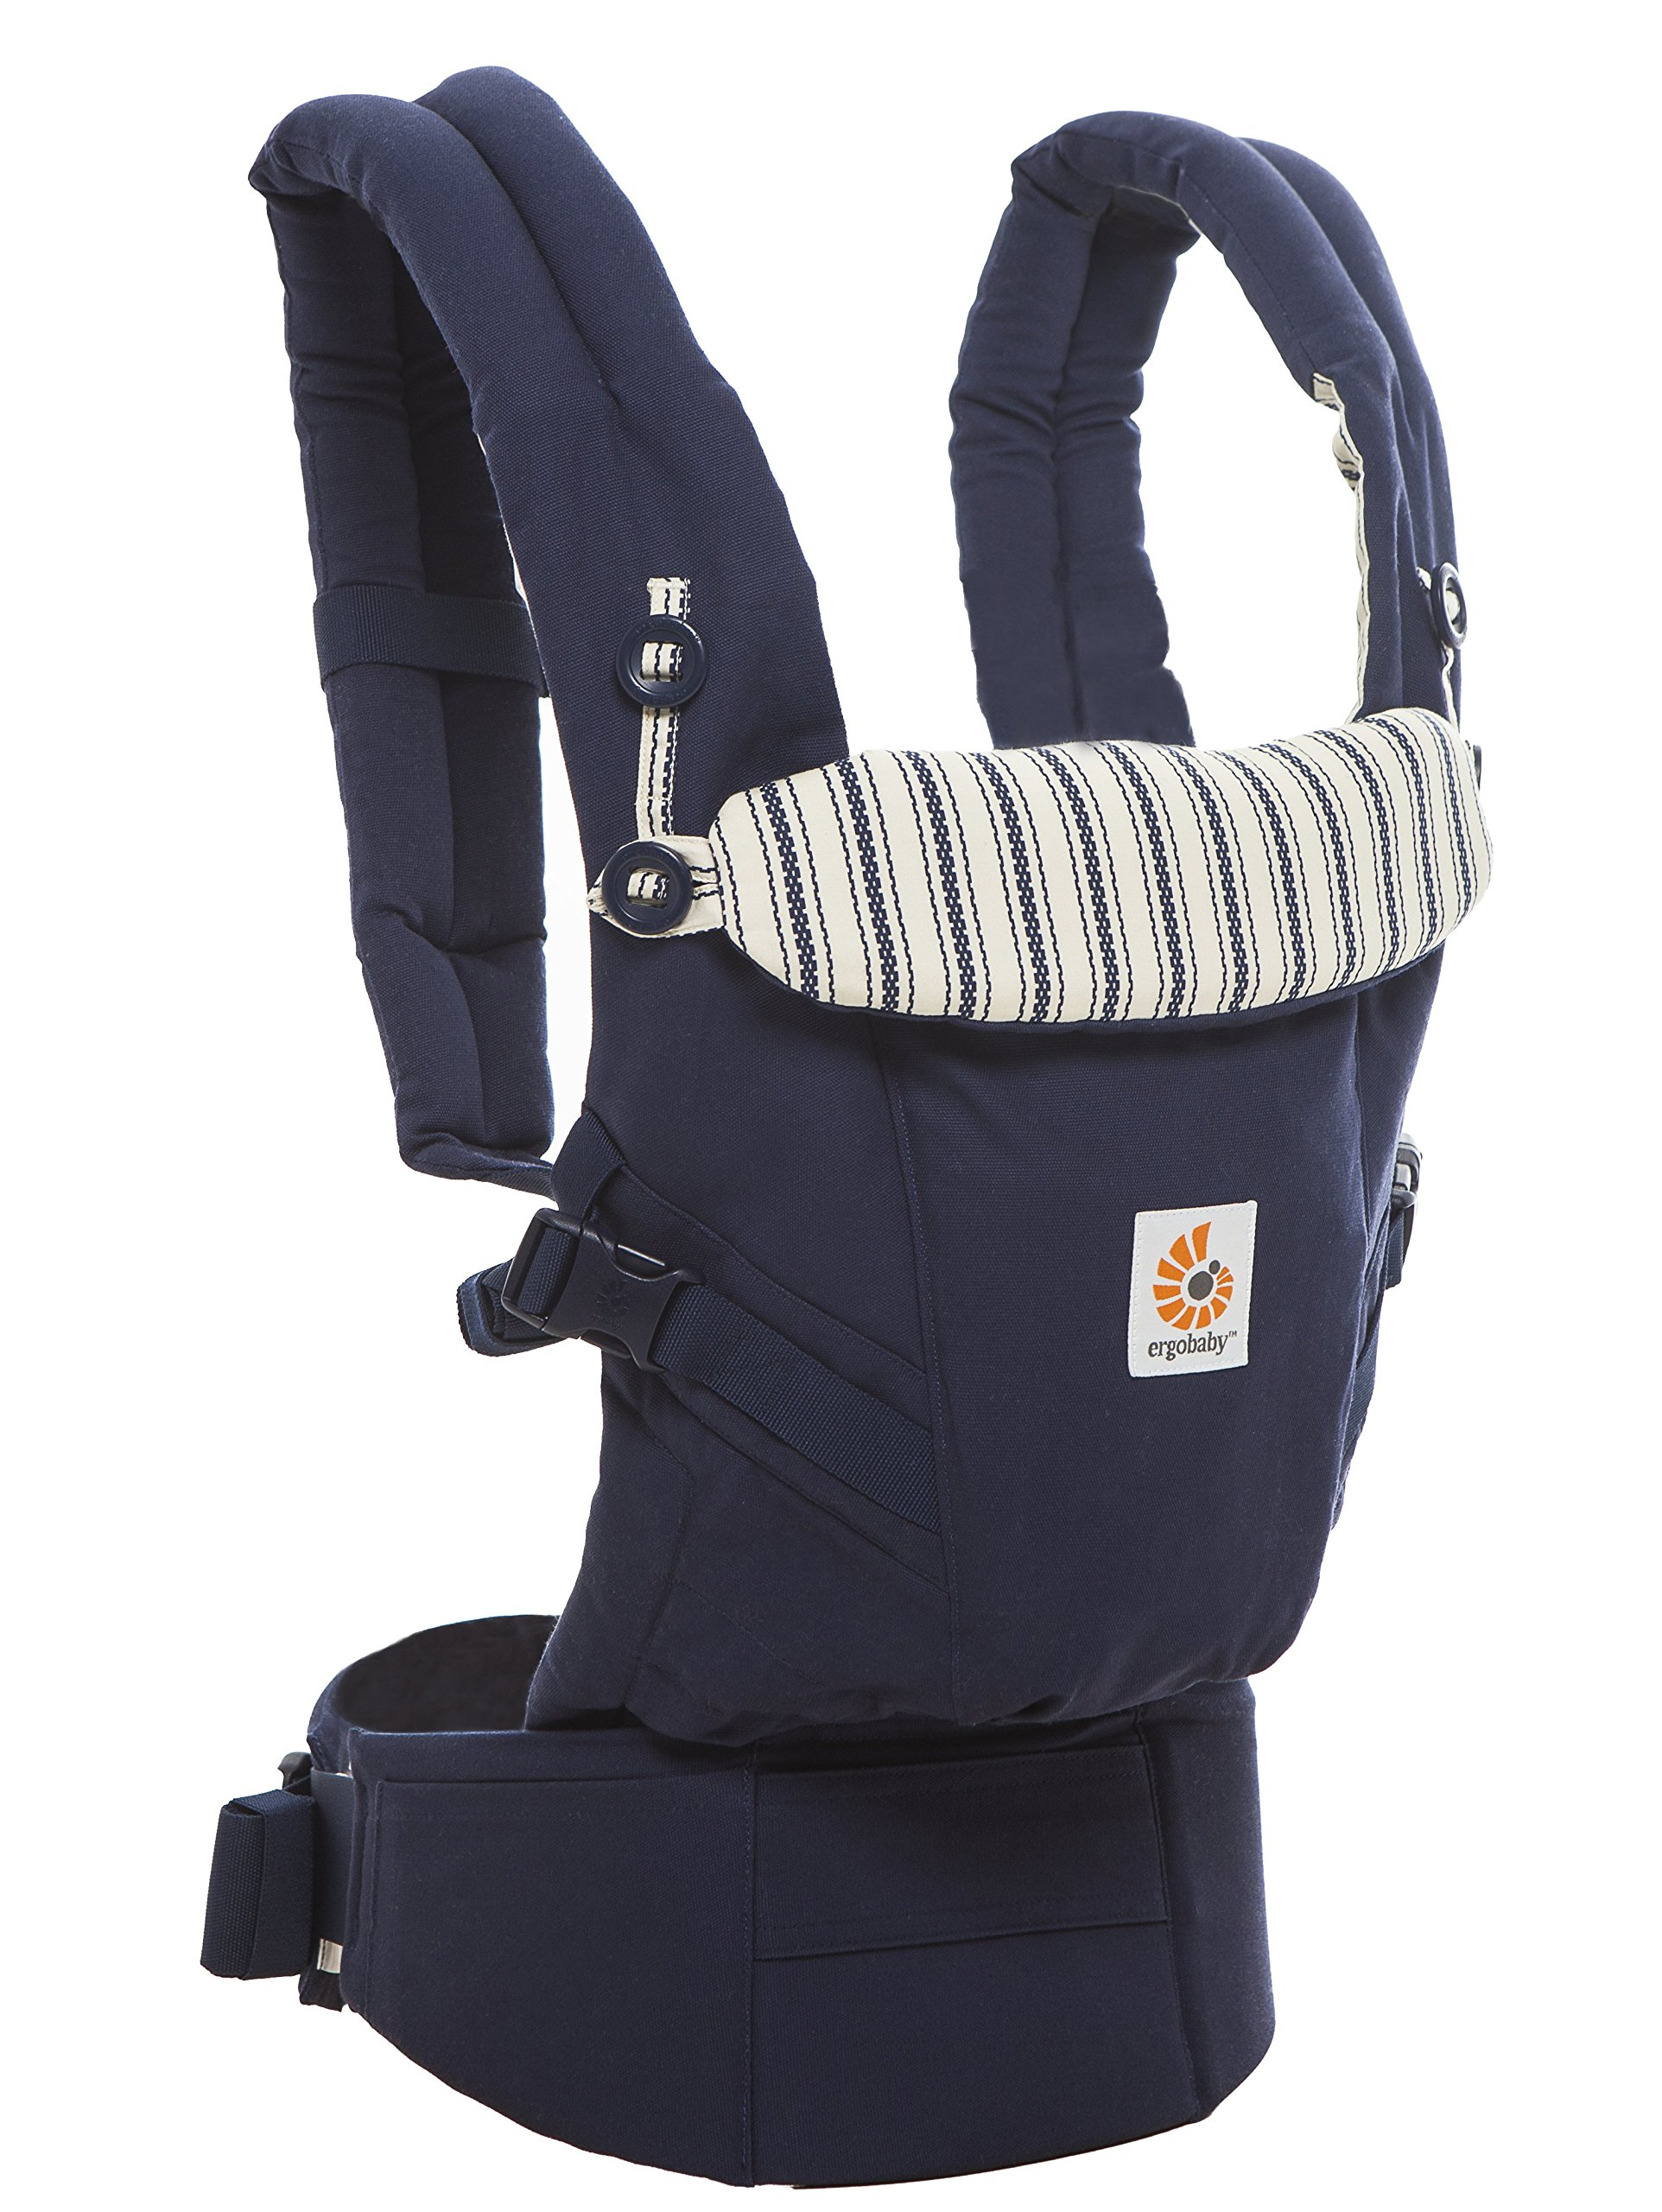 Ergobaby Baby Carrier for Newborn to Toddler, Admiral Blue Adapt 3-Position Ergonomic Child Carrier Backpack Ergobaby Carrier for newborns - The ergonomic bucket seat gradually adjusts to your growing baby, to ensure baby is seated in a natural frog-leg position (M-shape position) from newborn to toddler (3.2-20 kg / 7-45 lbs). NEW - Now with lumbar support. Long-wearing comfort for parents with even weight distribution between hips and shoulders. Lumbar support waistbelt that can be adjusted to the height of the carry position for extra, long-wearing comfort. 3 carry positions: front-inward, hip and back. The carrier has a padded, foldable head and neck support and a tuck-away baby hood for sun protection (UPF 50+) and privacy. It is possible to breastfeed in the carrier. 3